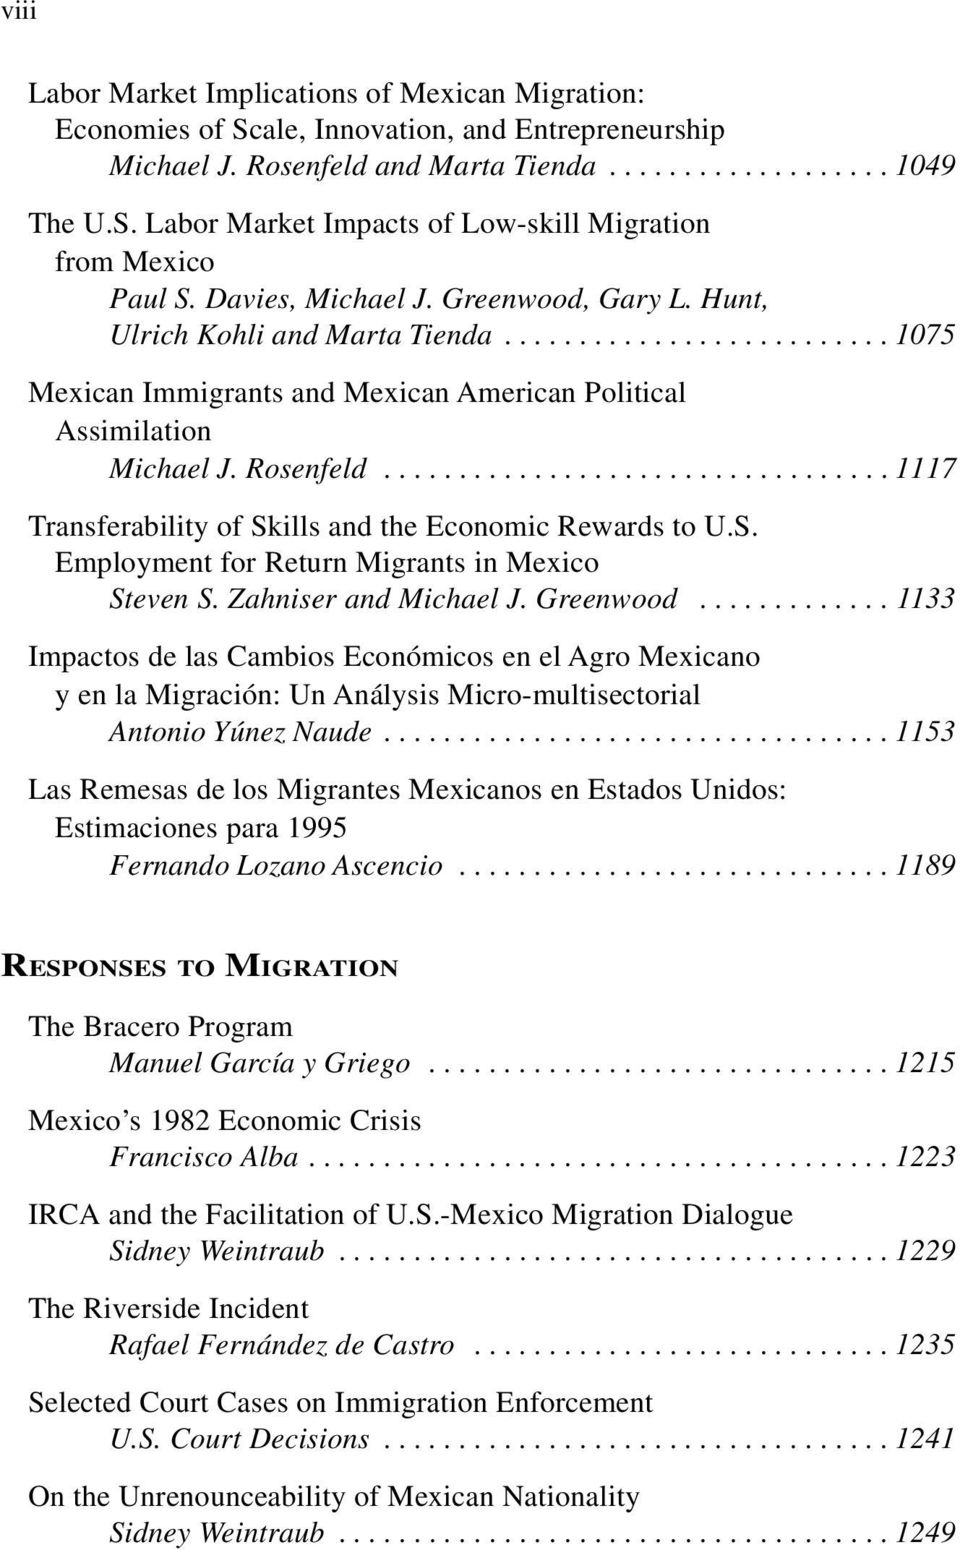 ................................. 1117 Transferability of Skills and the Economic Rewards to U.S. Employment for Return Migrants in Mexico Steven S. Zahniser and Michael J. Greenwood.